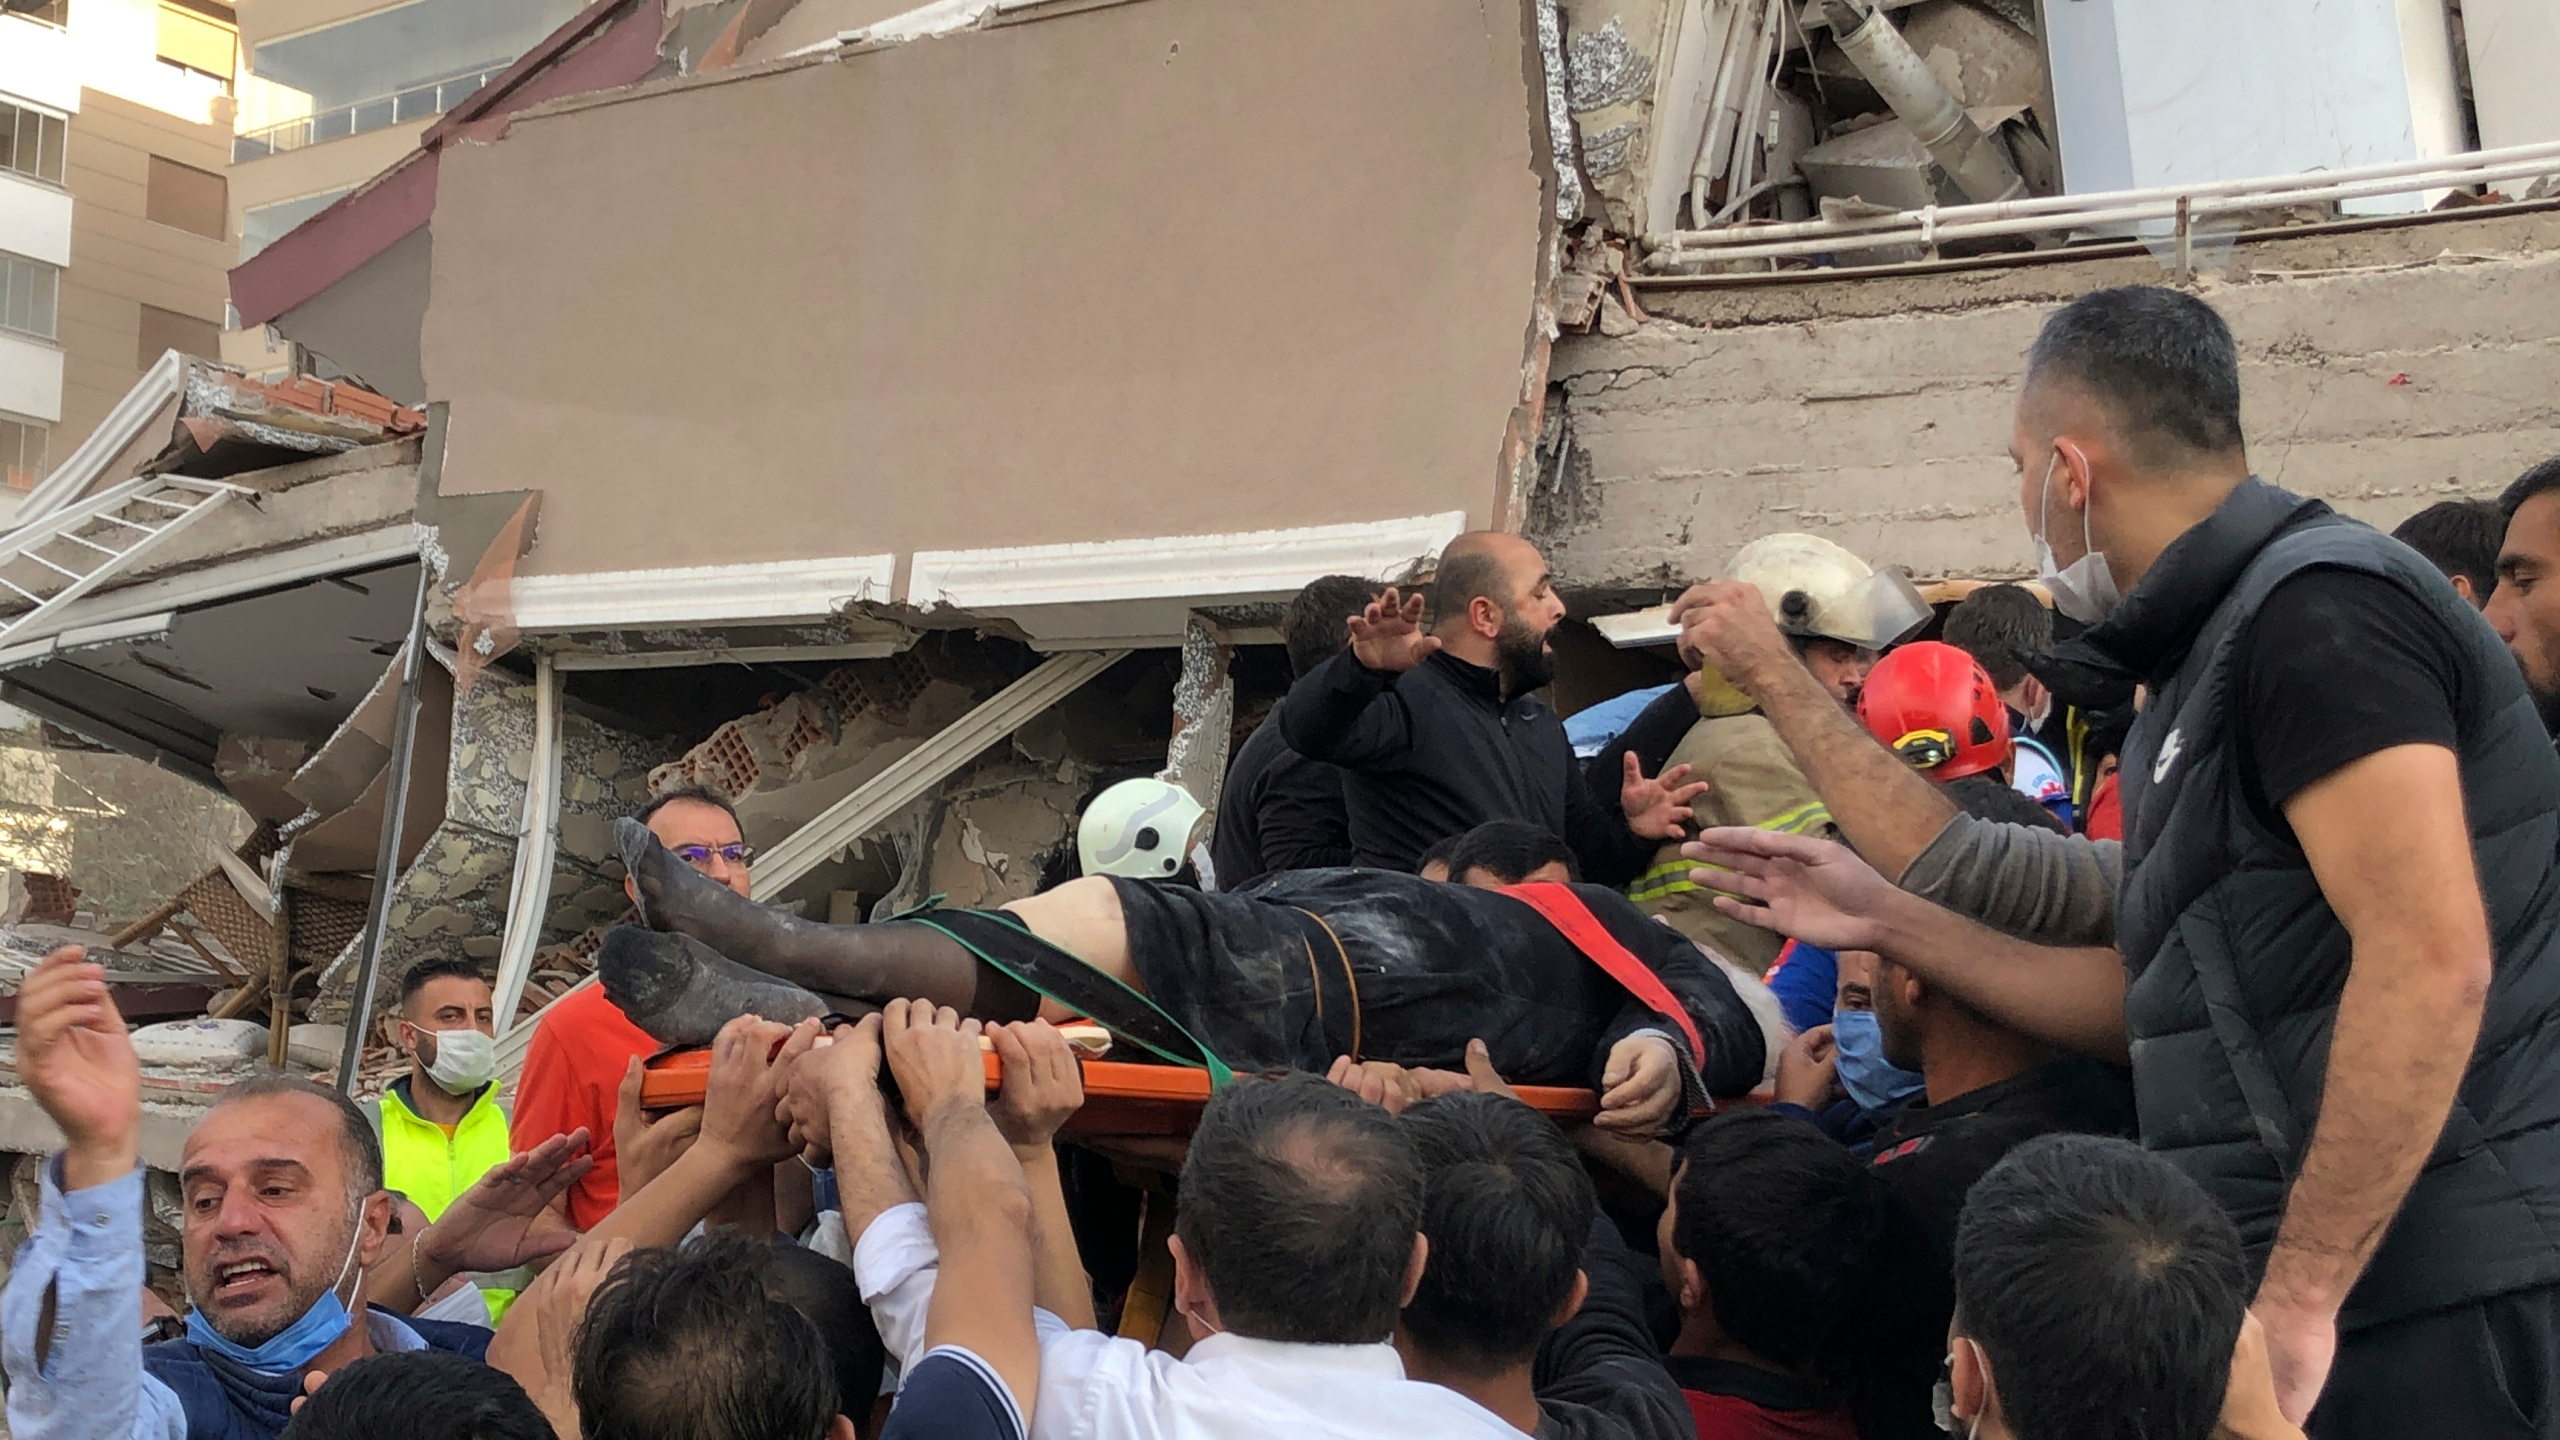 Rescue workers and local people carry a wounded person found in the debris of a collapsed building, in Izmir, Turkey, on Oct. 30, 2020, after a strong earthquake in the Aegean Sea has shaken Turkey and Greece. (Ismail Gokmen / Associated Press)